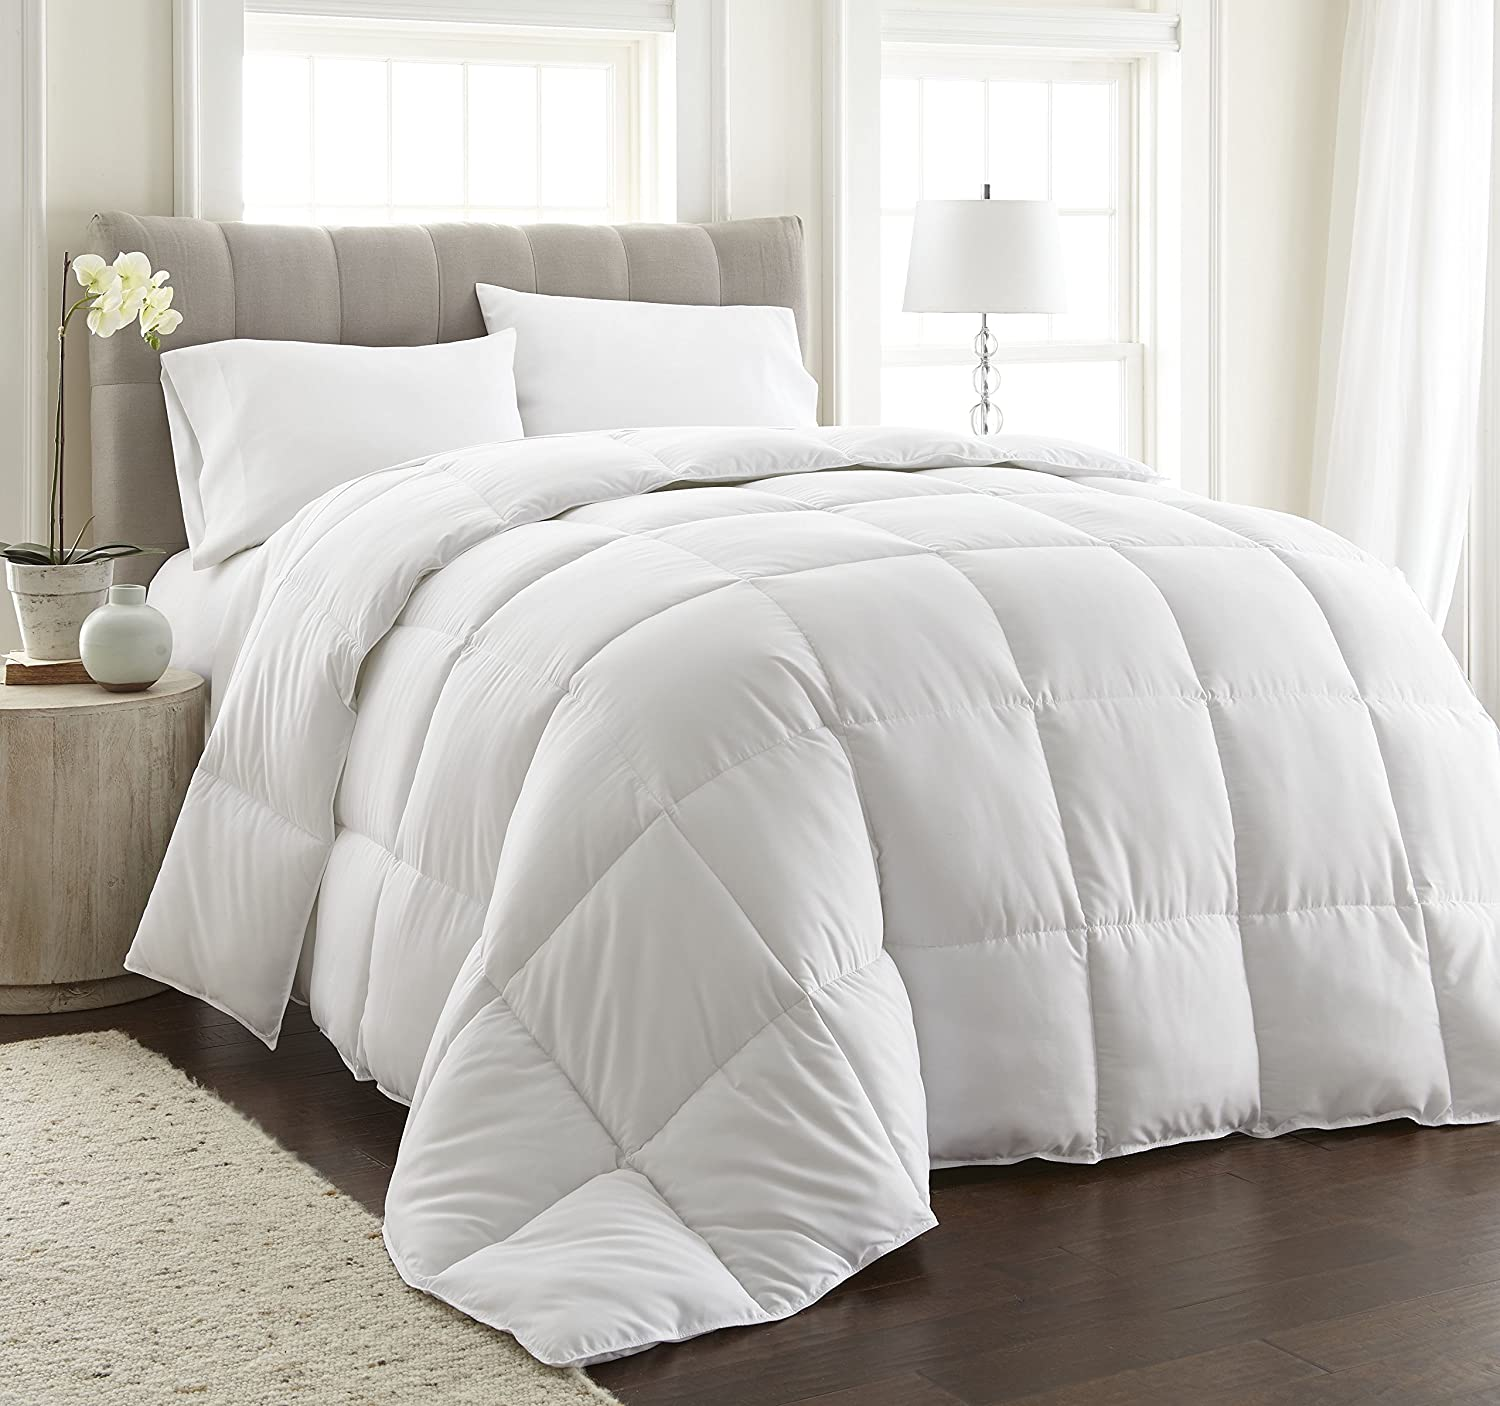 by top alternative x rn fits comforter white king dp super amazon com pillow beds down oversized quality exclusively high bedding blowout